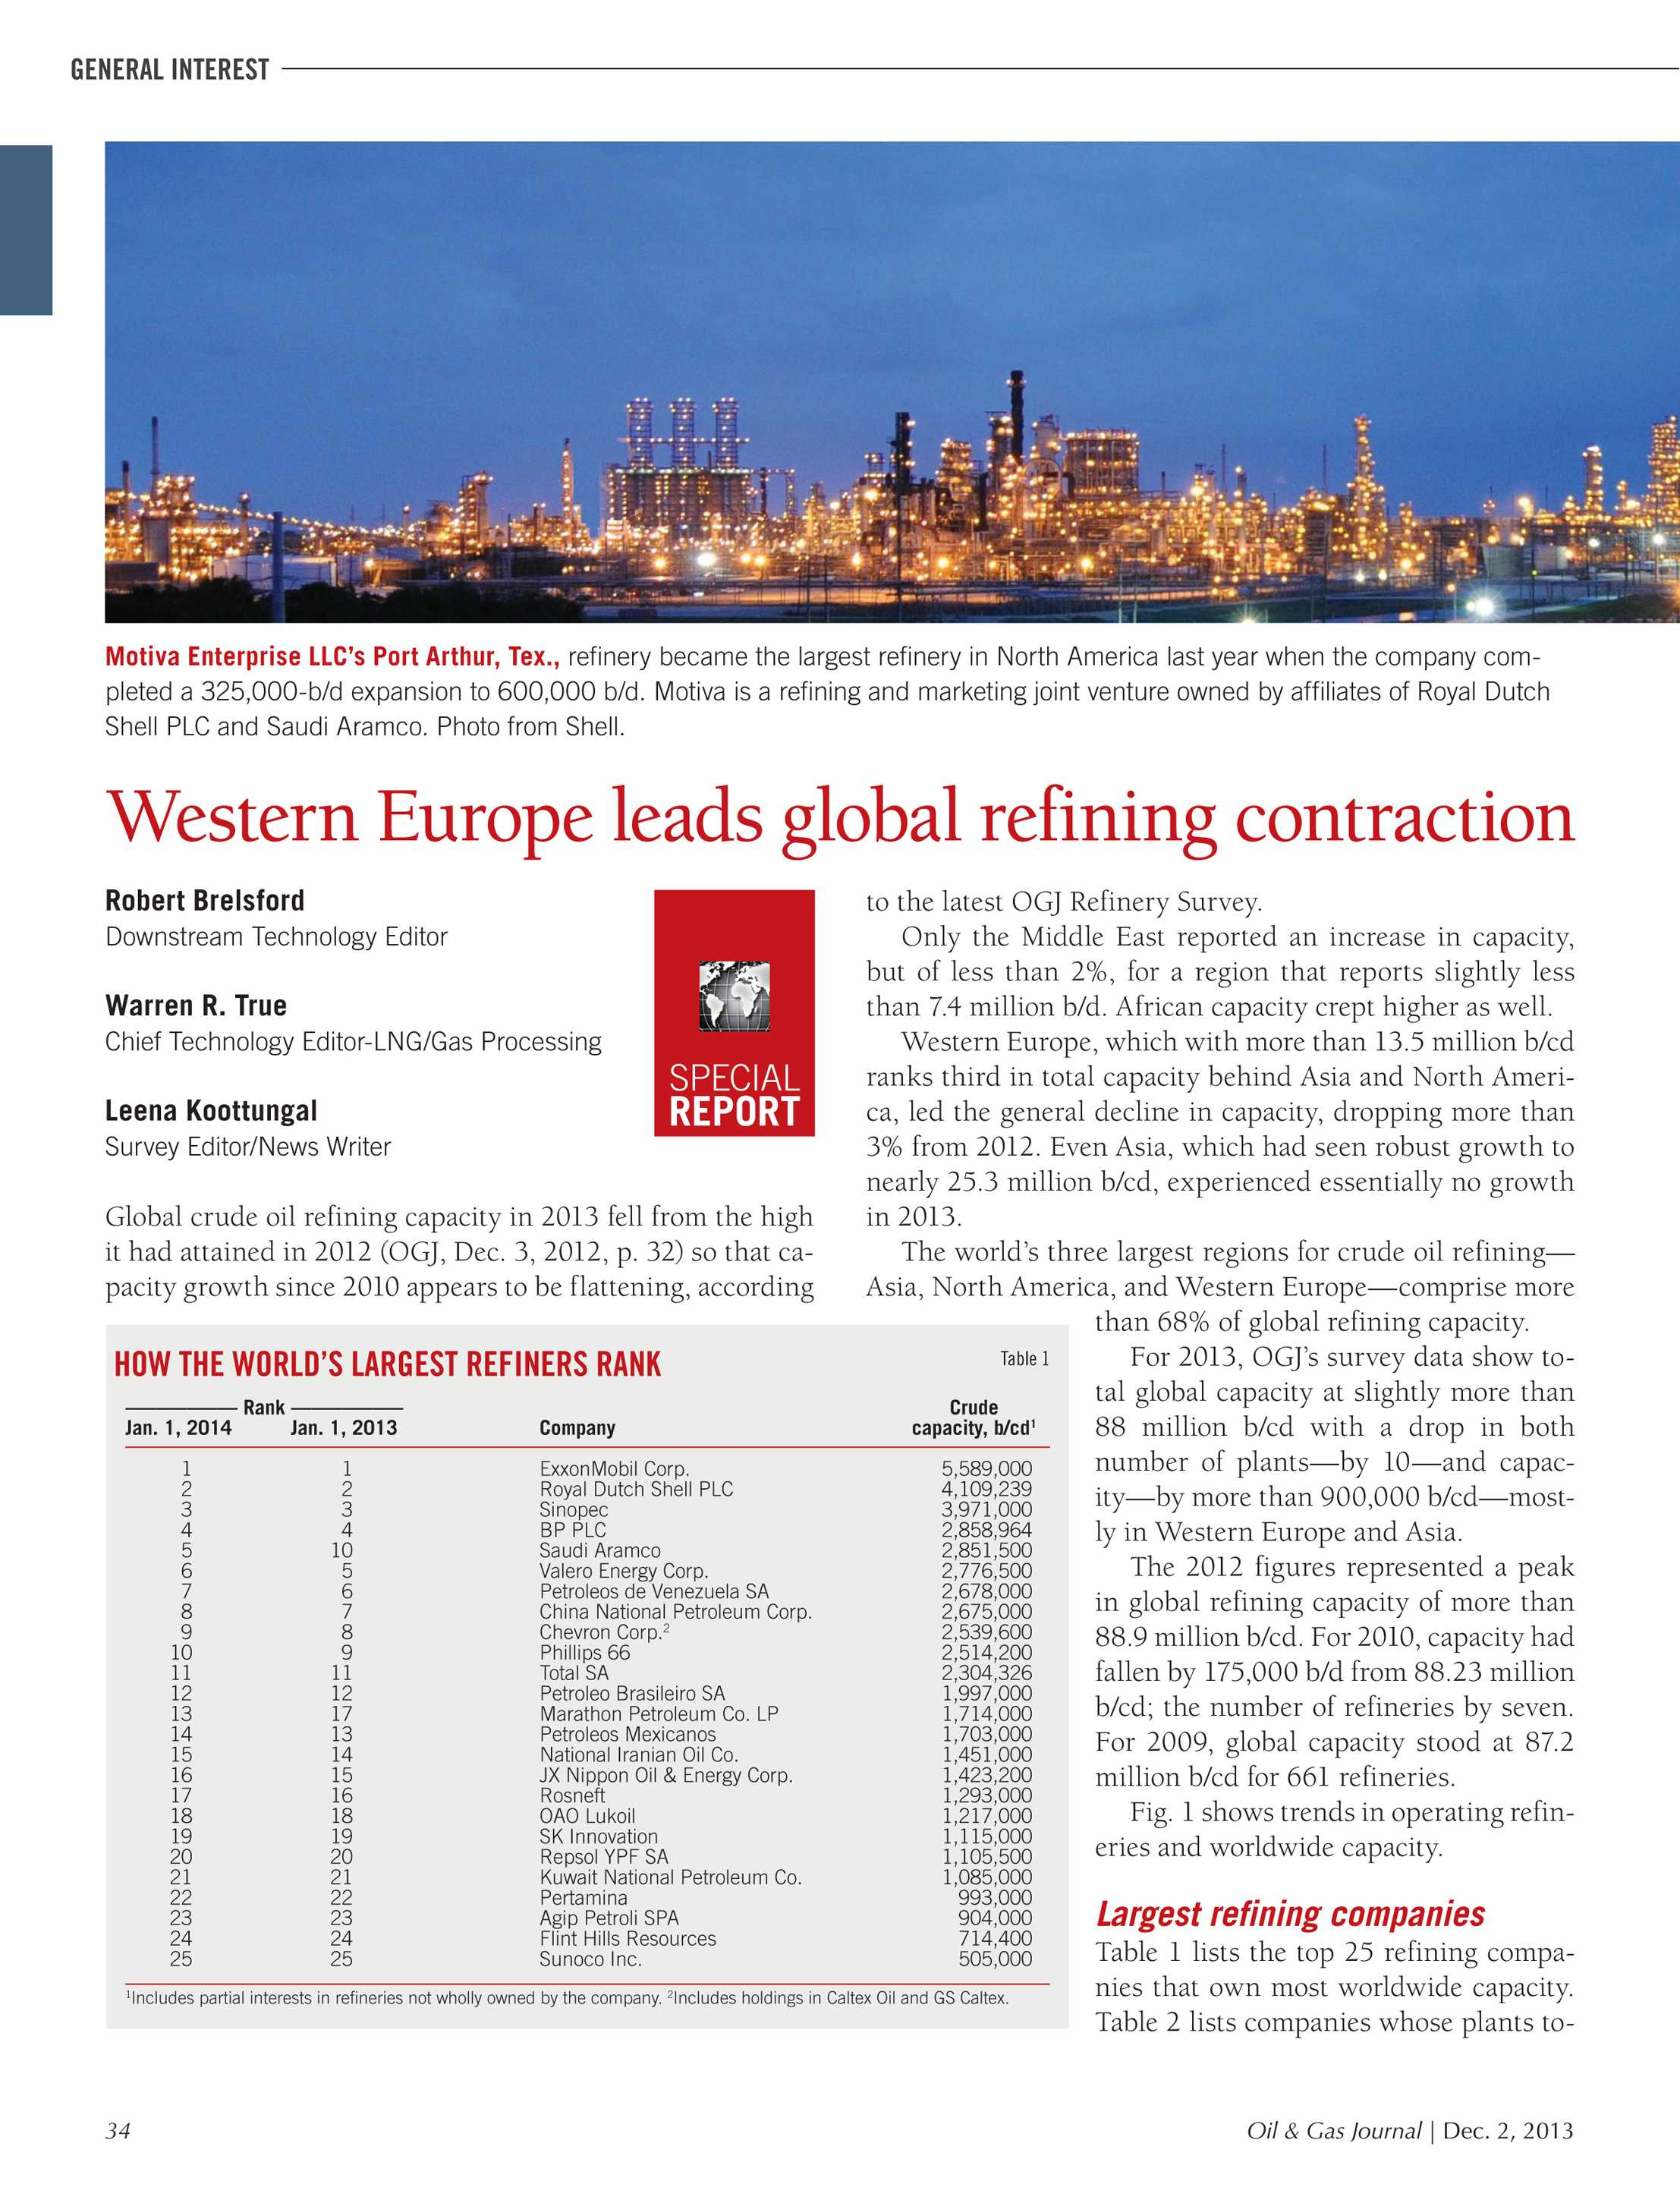 Oil & Gas Journal - December 2, 2013 - page 34